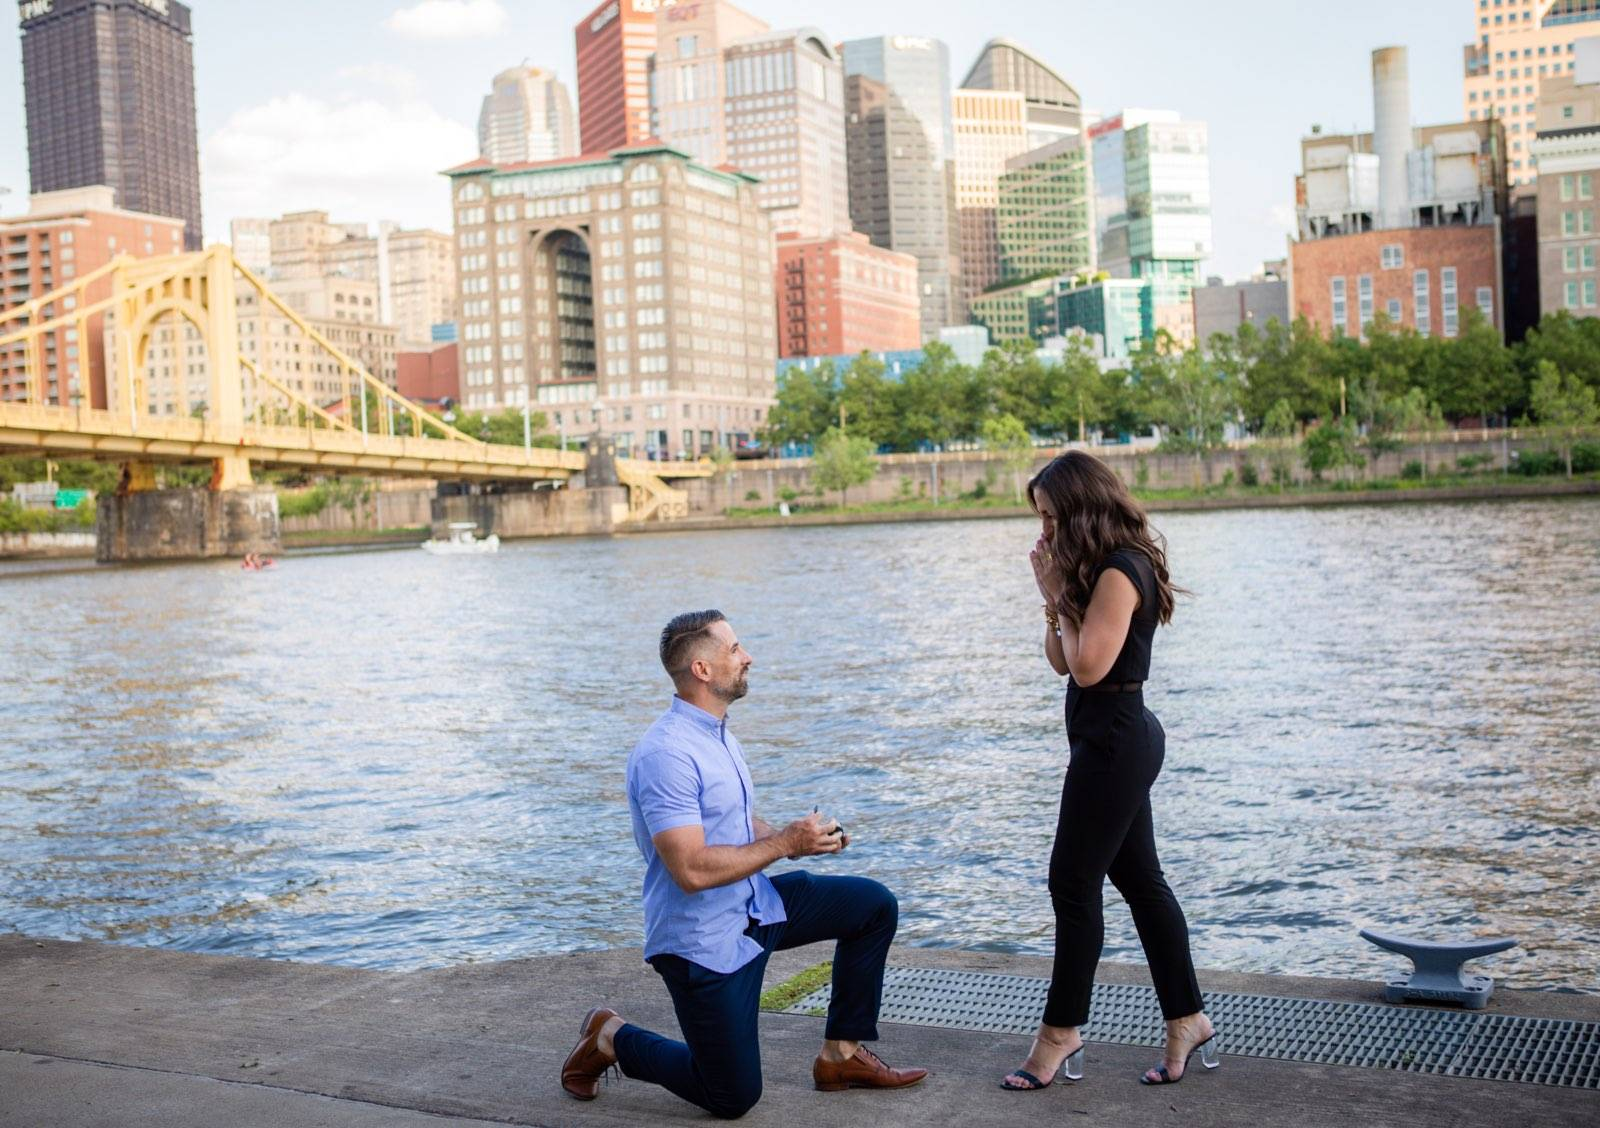 Martin Proposes to Amanda with an Engagement Ring from Henne Jewelers